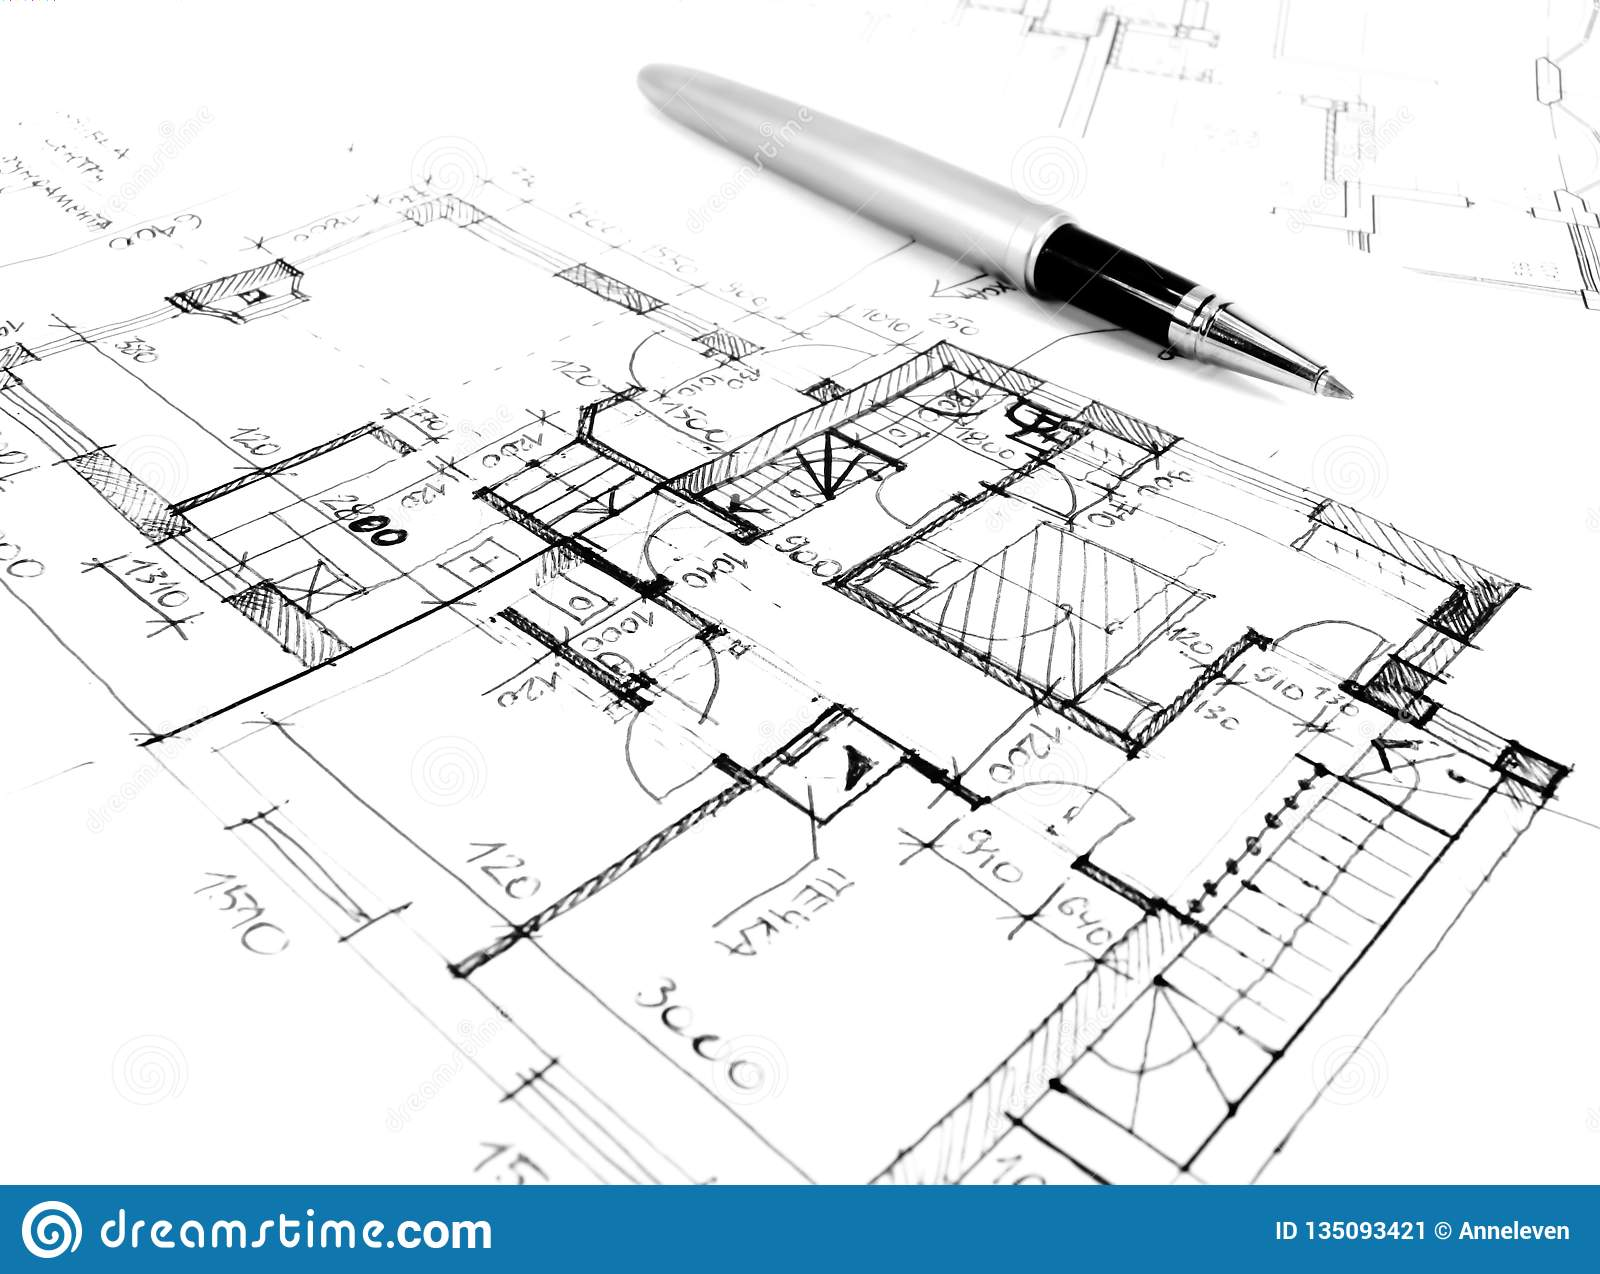 architectural drawing plan of house project - architecture, engineering and real estate styled concept